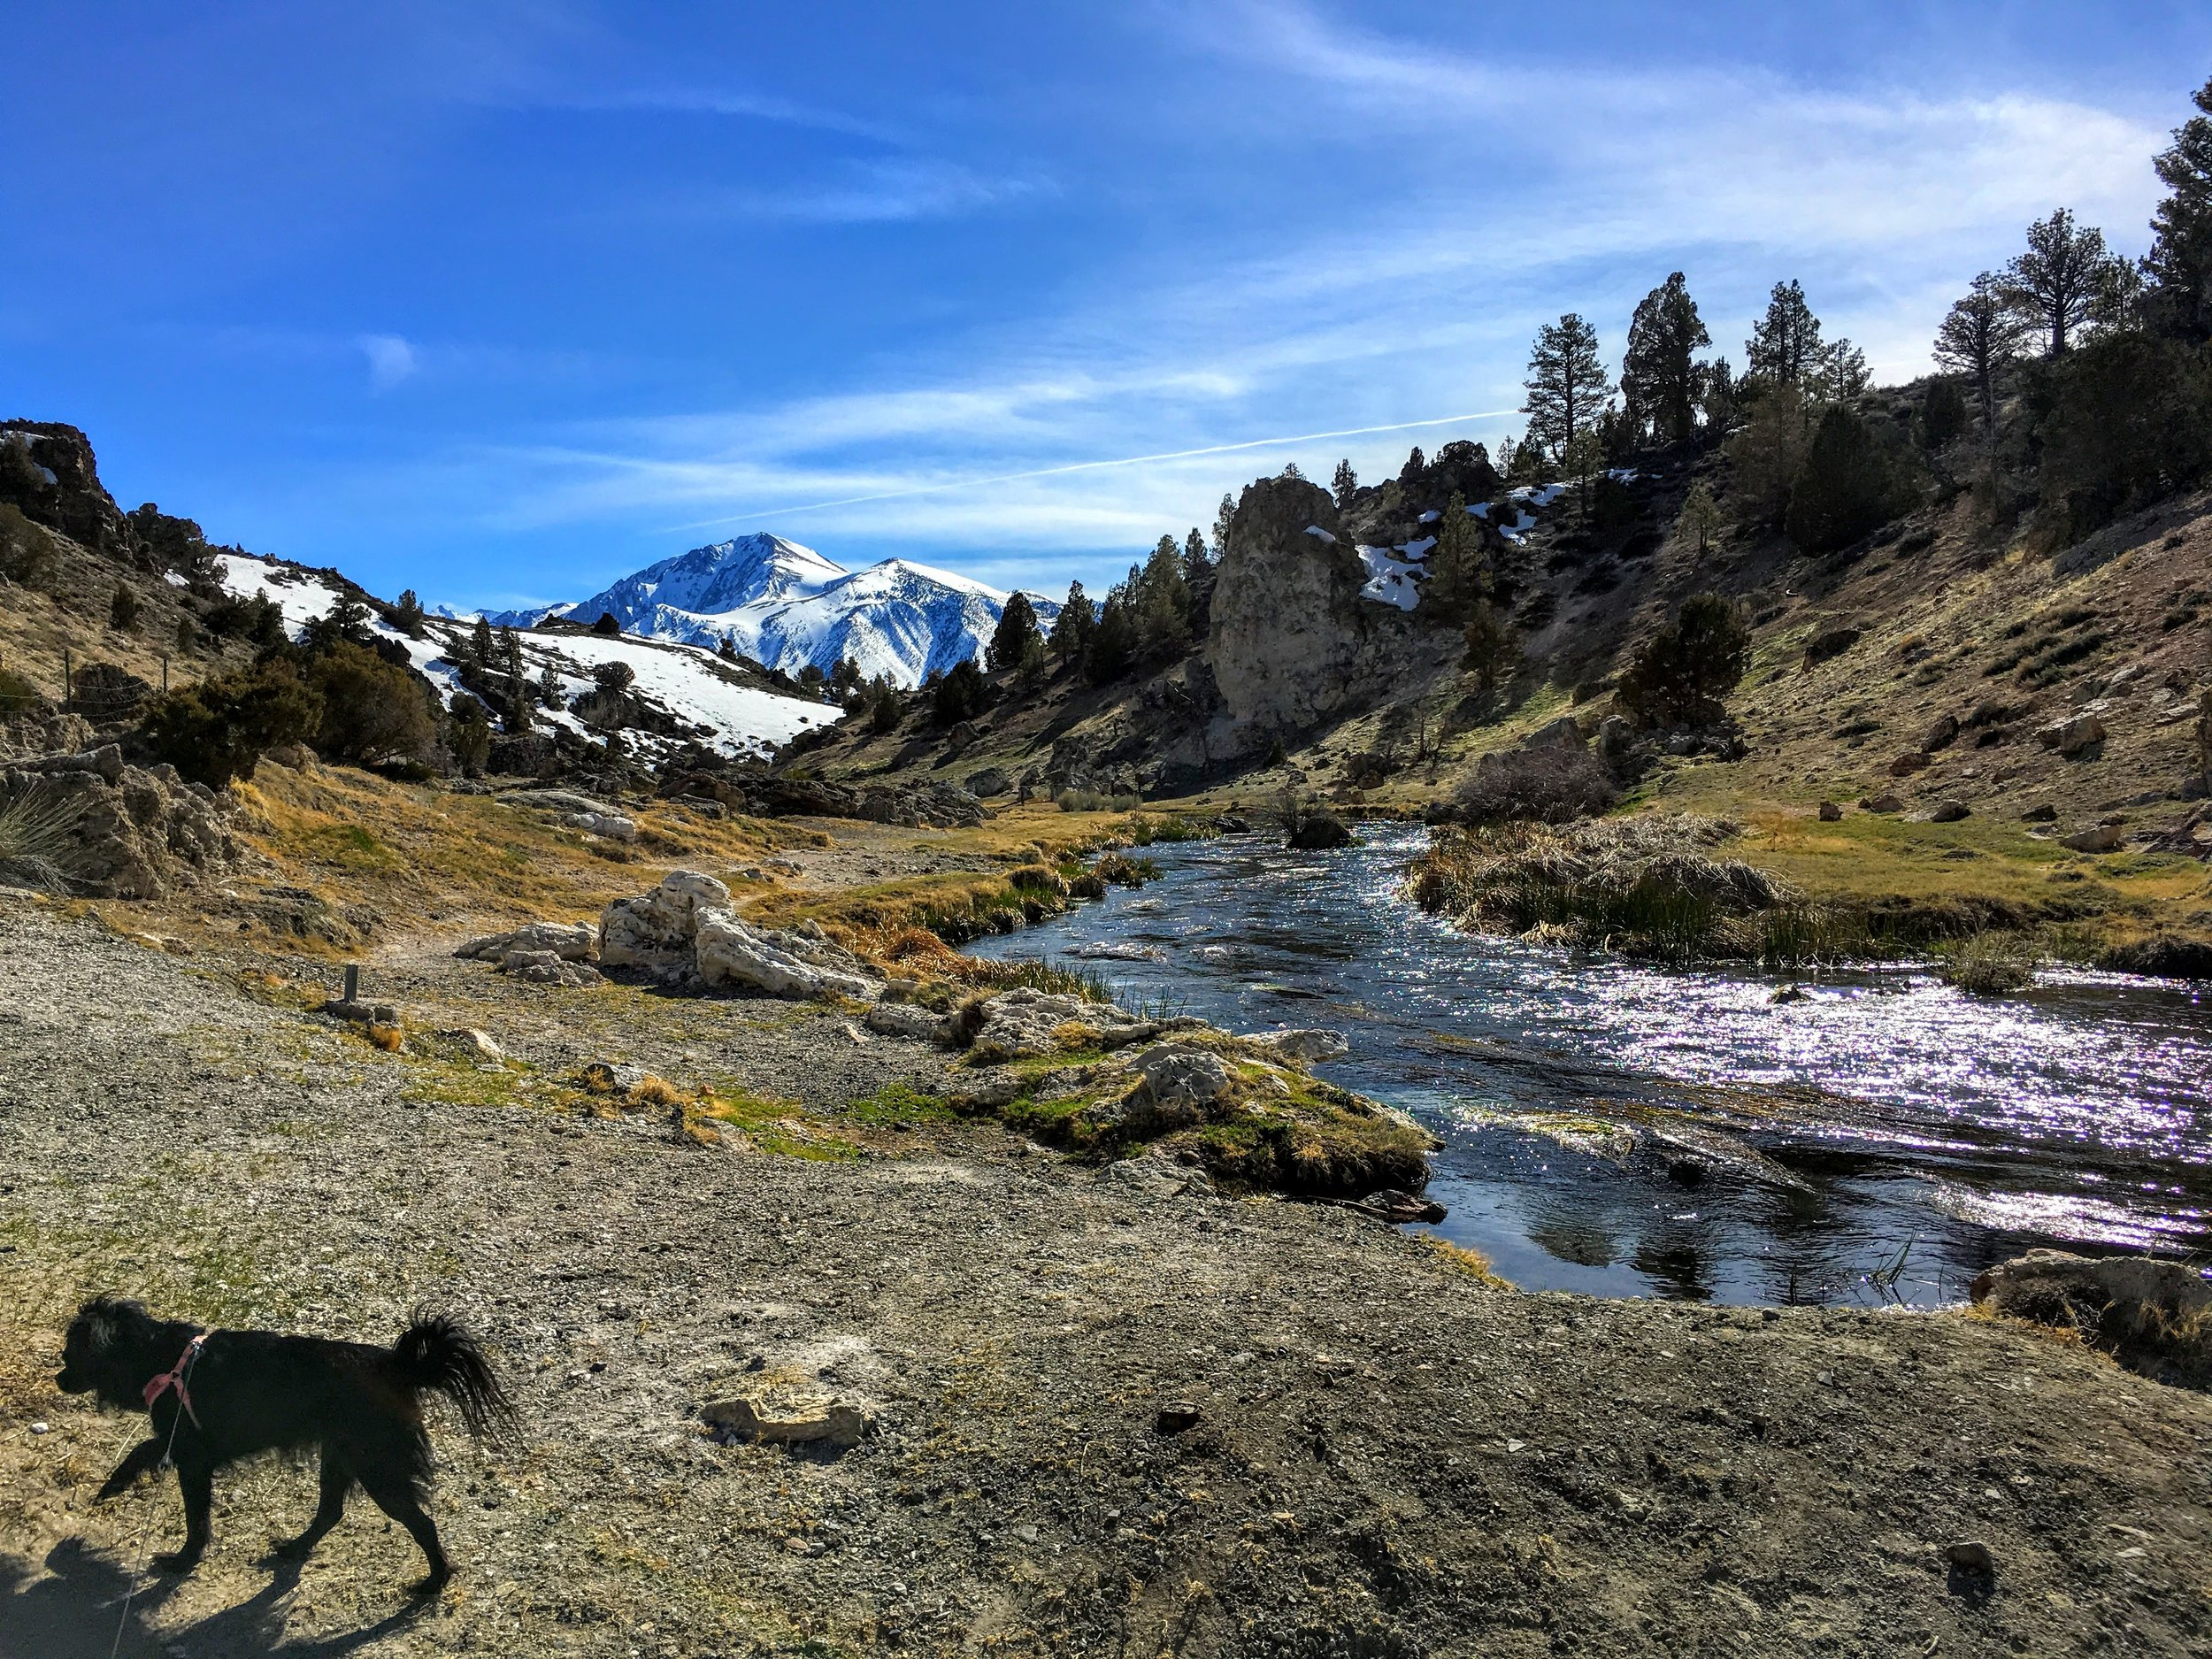 Beautiful Hot Creek (lives up to its name), a few miles from our current apartment in Mammoth.